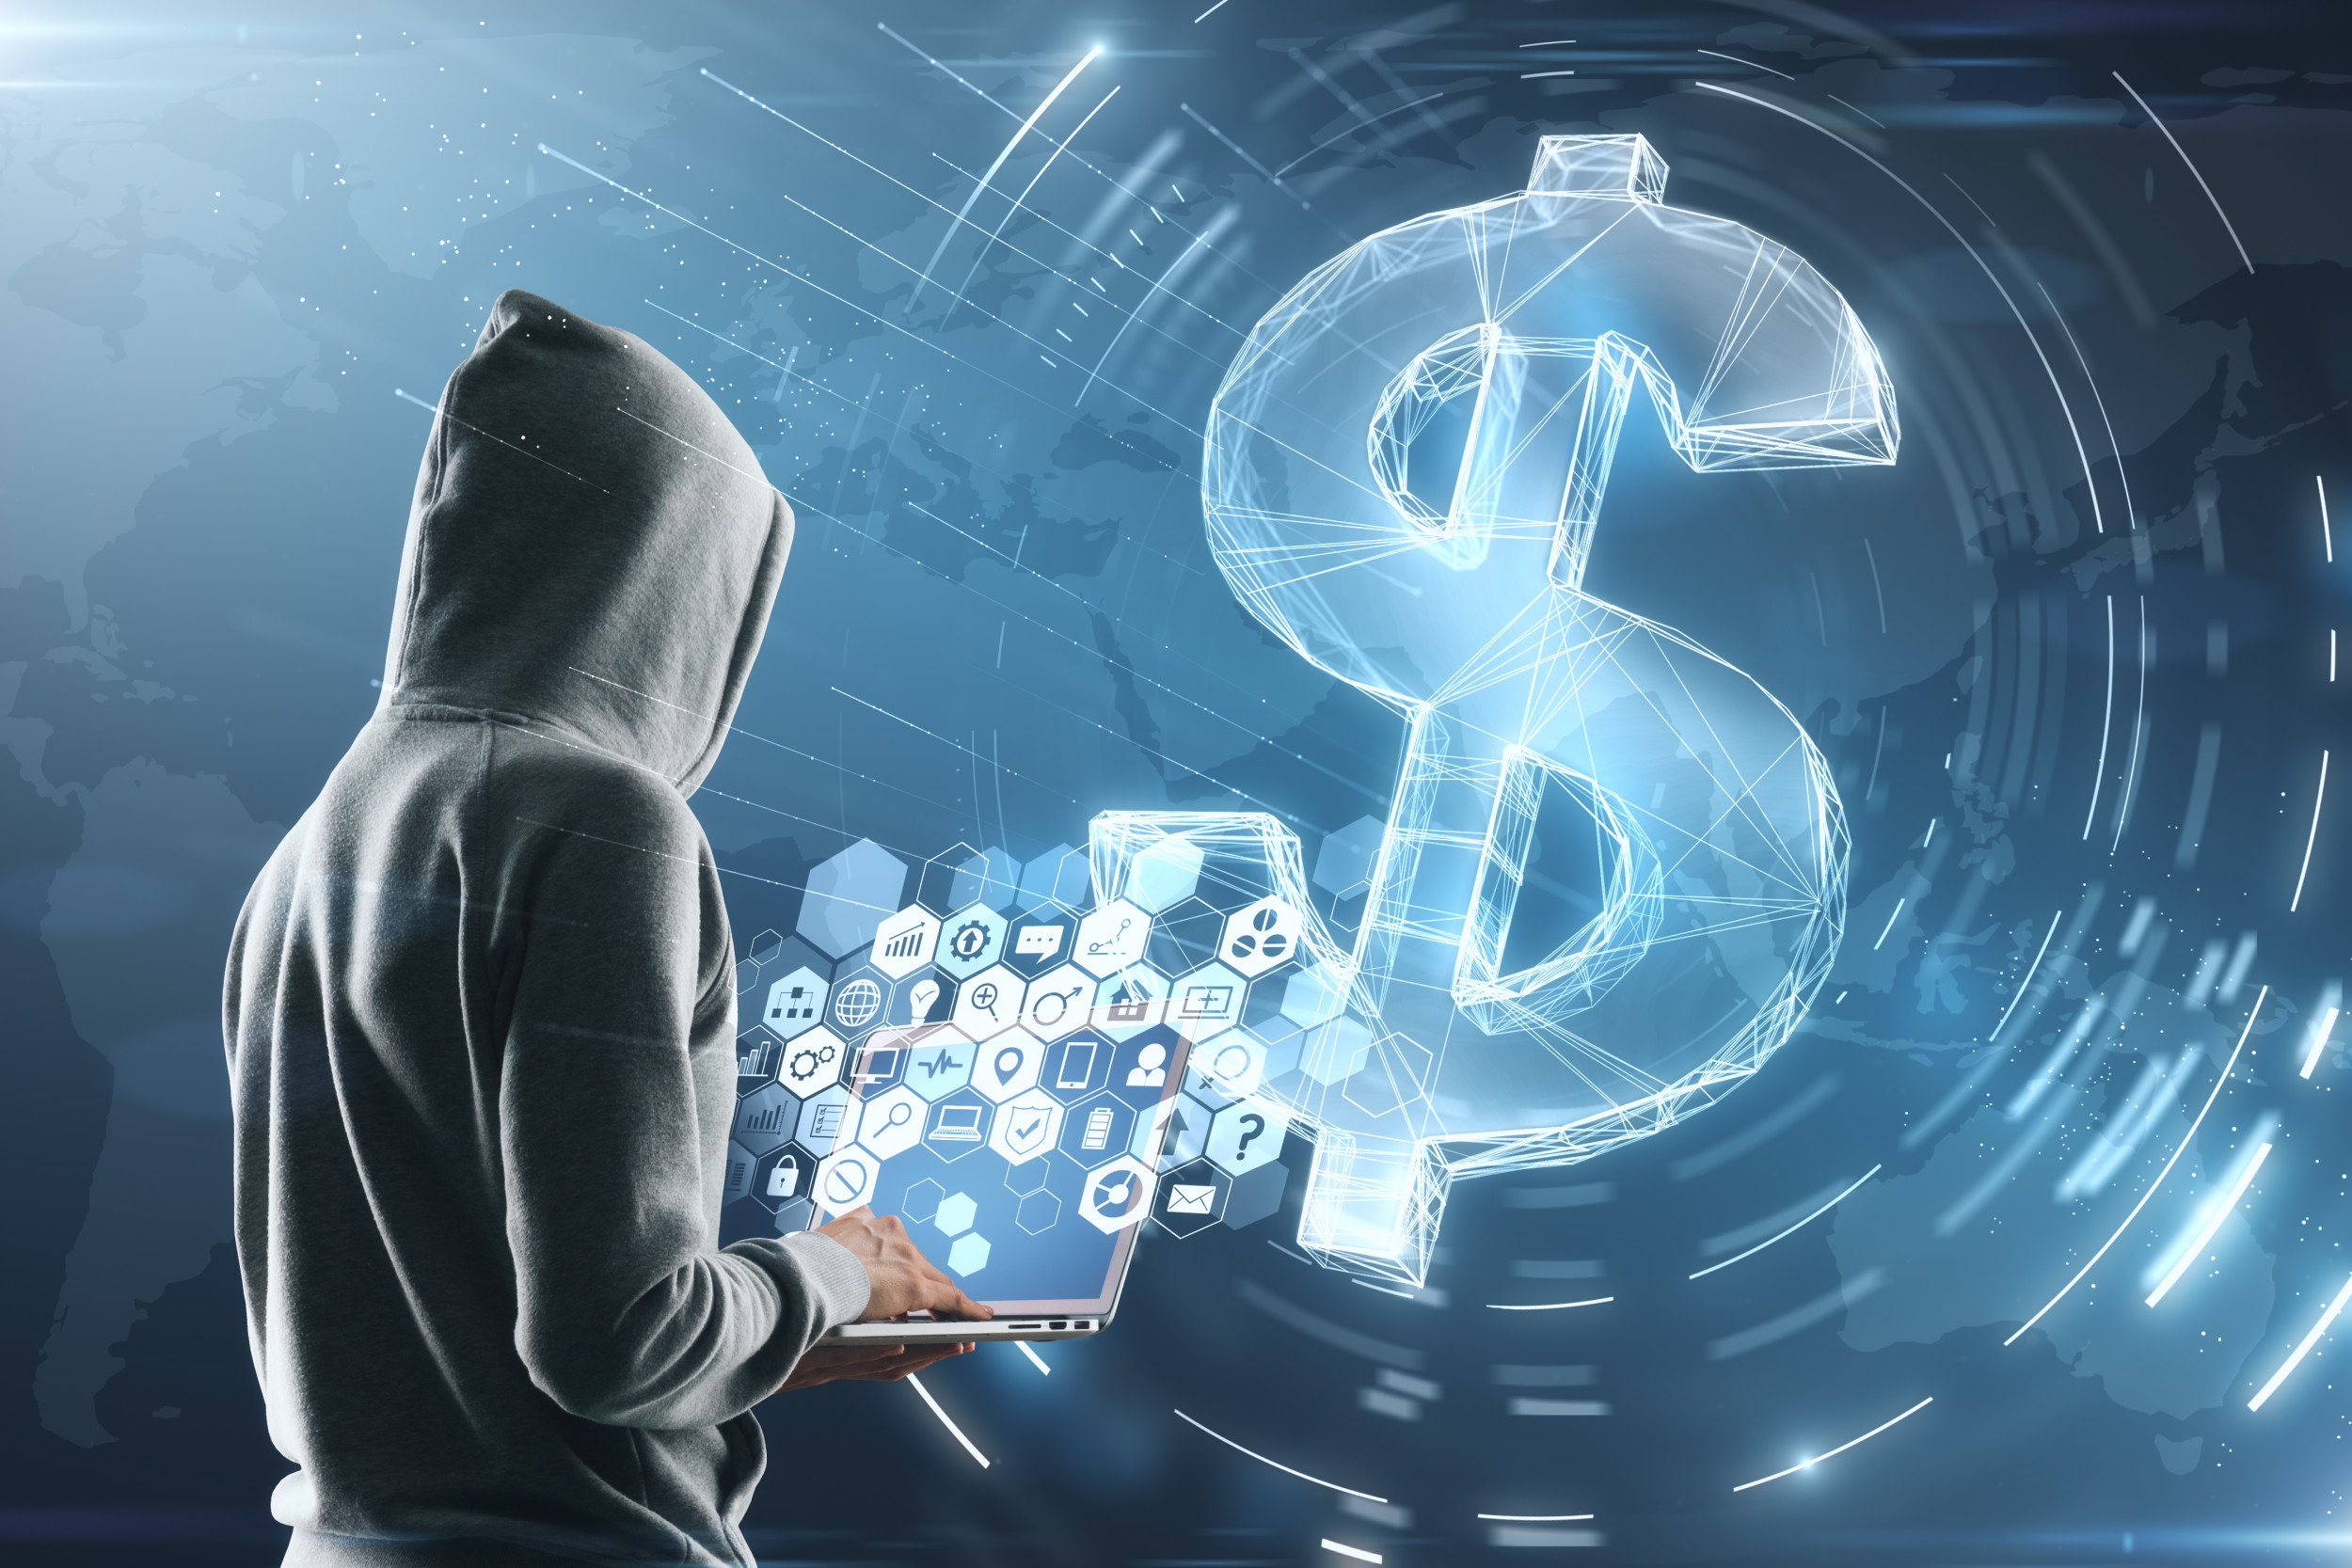 Hacker Steals $2.8 Million from Cryptocurrency 'Vault' Despite 'Unhackable' Blockchain Security